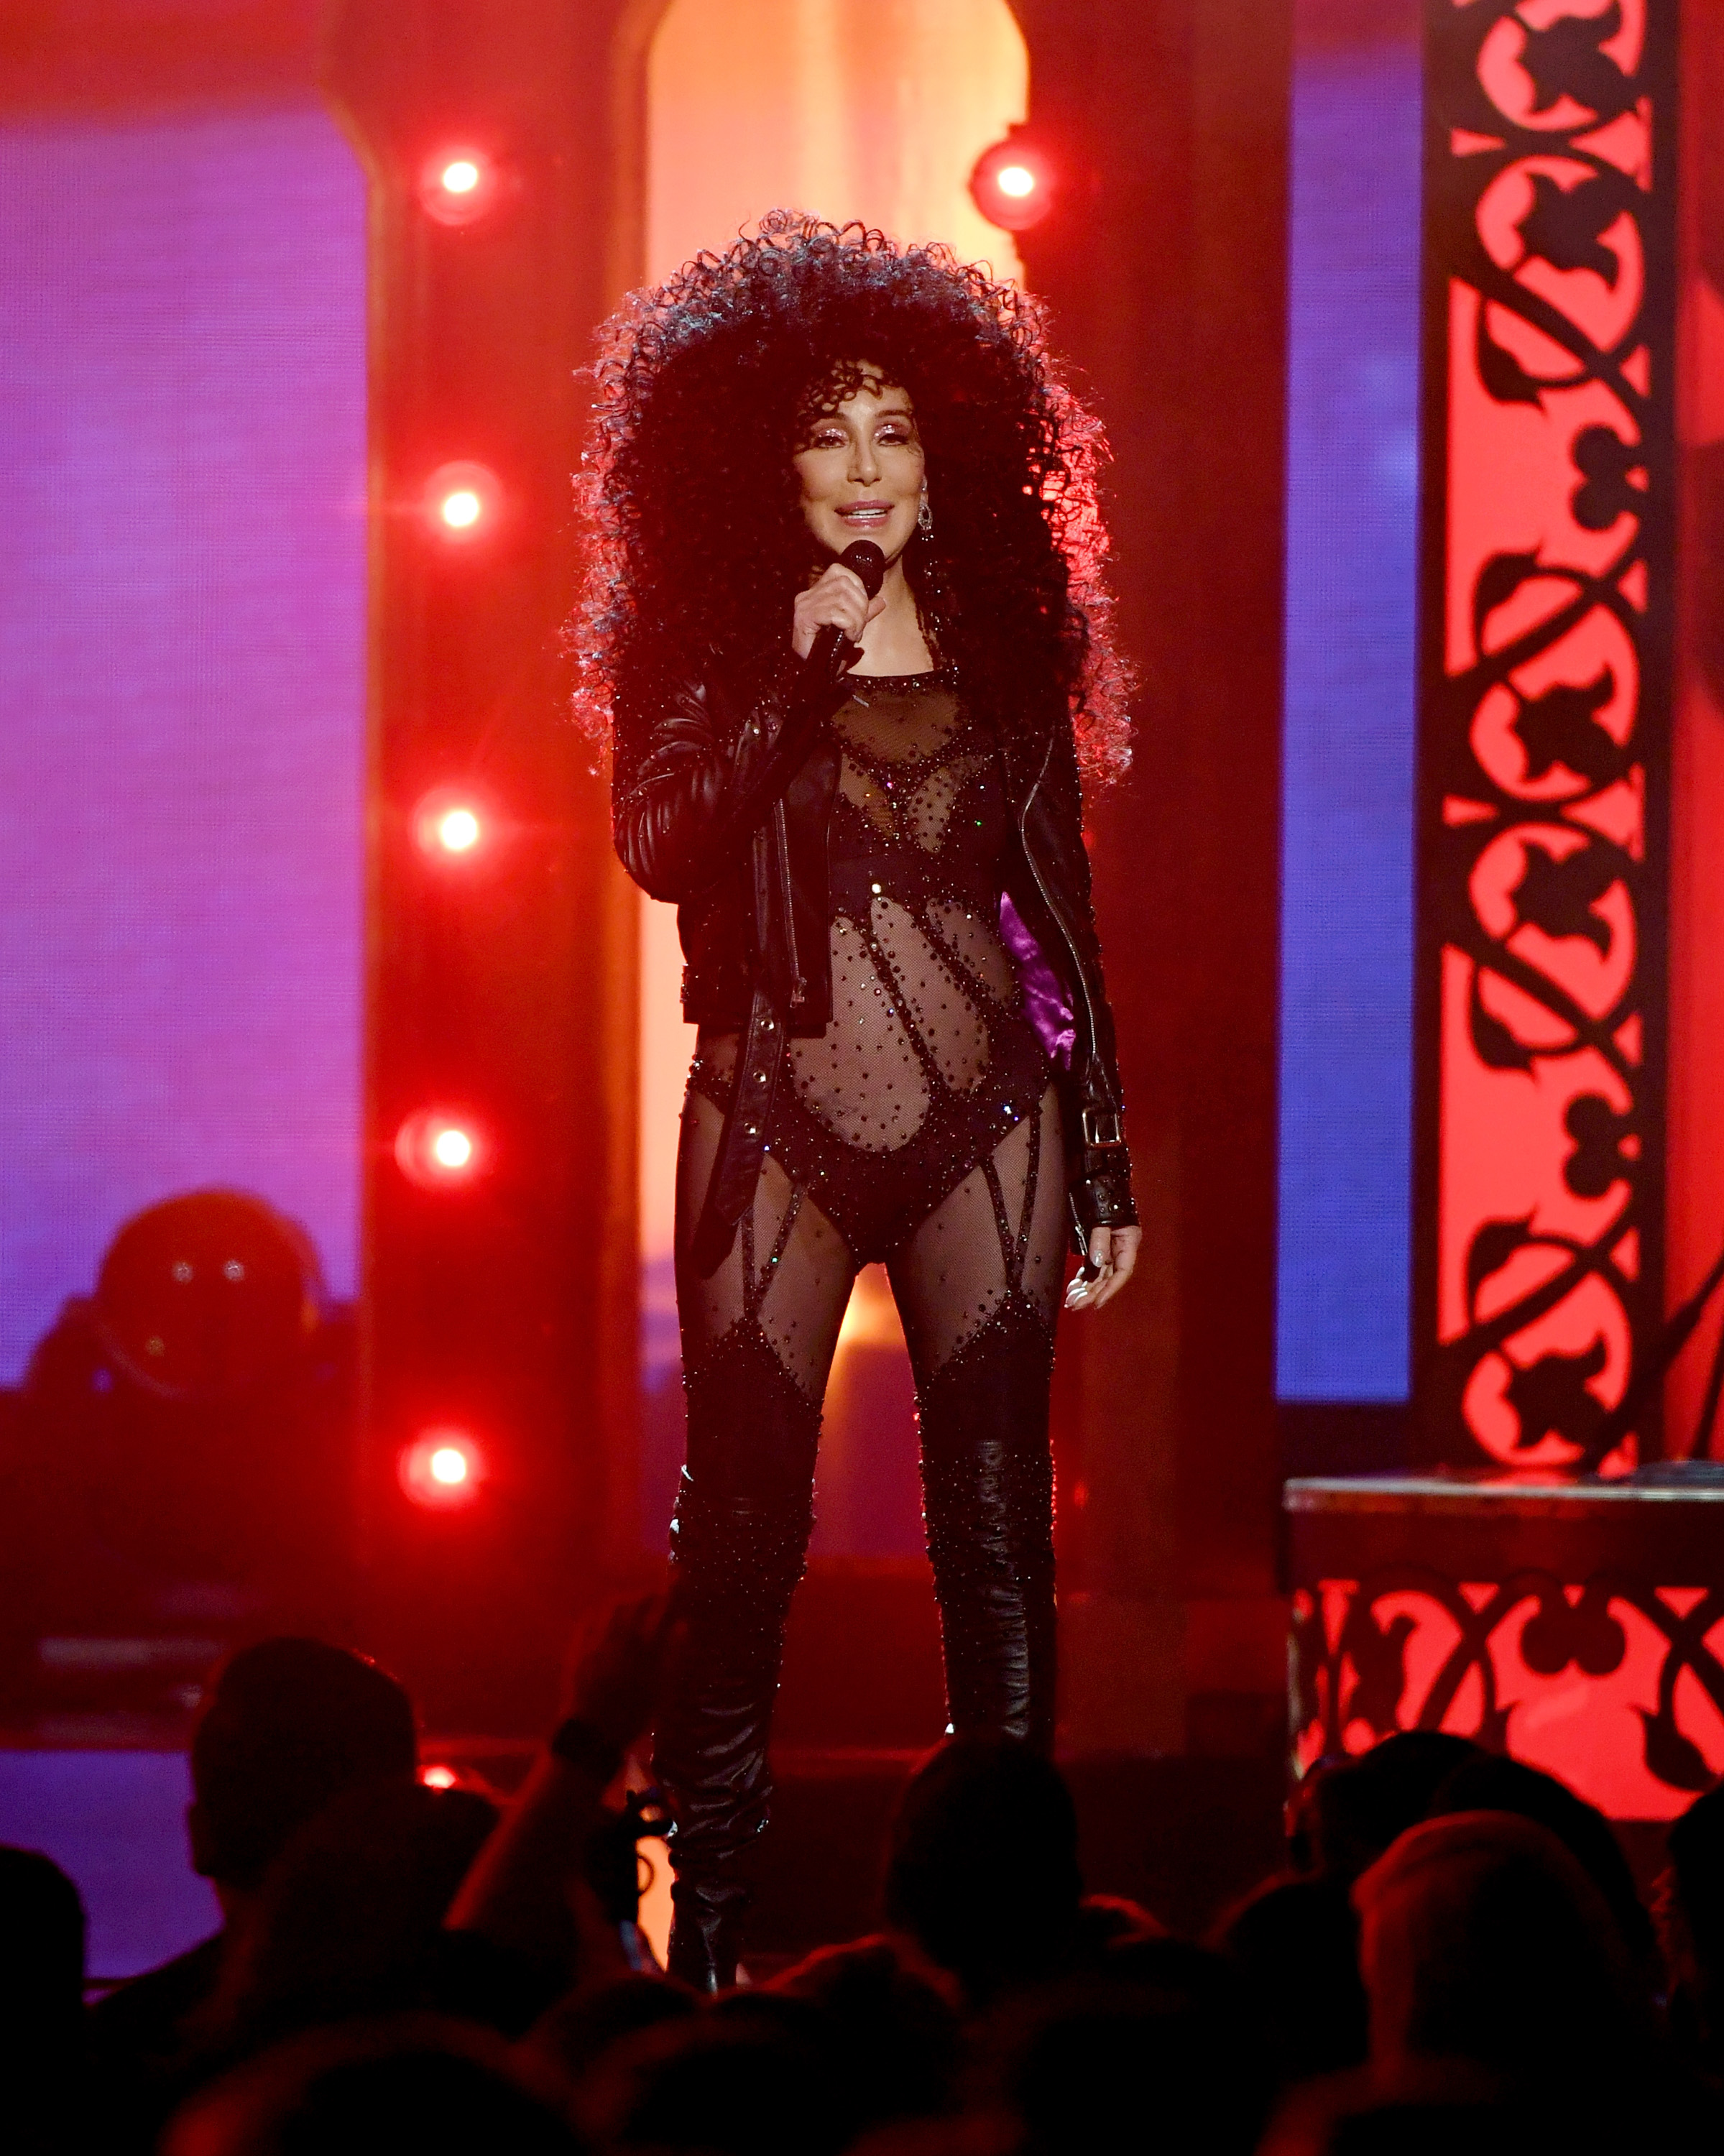 LAS VEGAS, NV - MAY 21:  Actress/singer Cher performs during the 2017 Billboard Music Awards at T-Mobile Arena on May 21, 2017 in Las Vegas, Nevada.  (Photo by Ethan Miller/Getty Images)